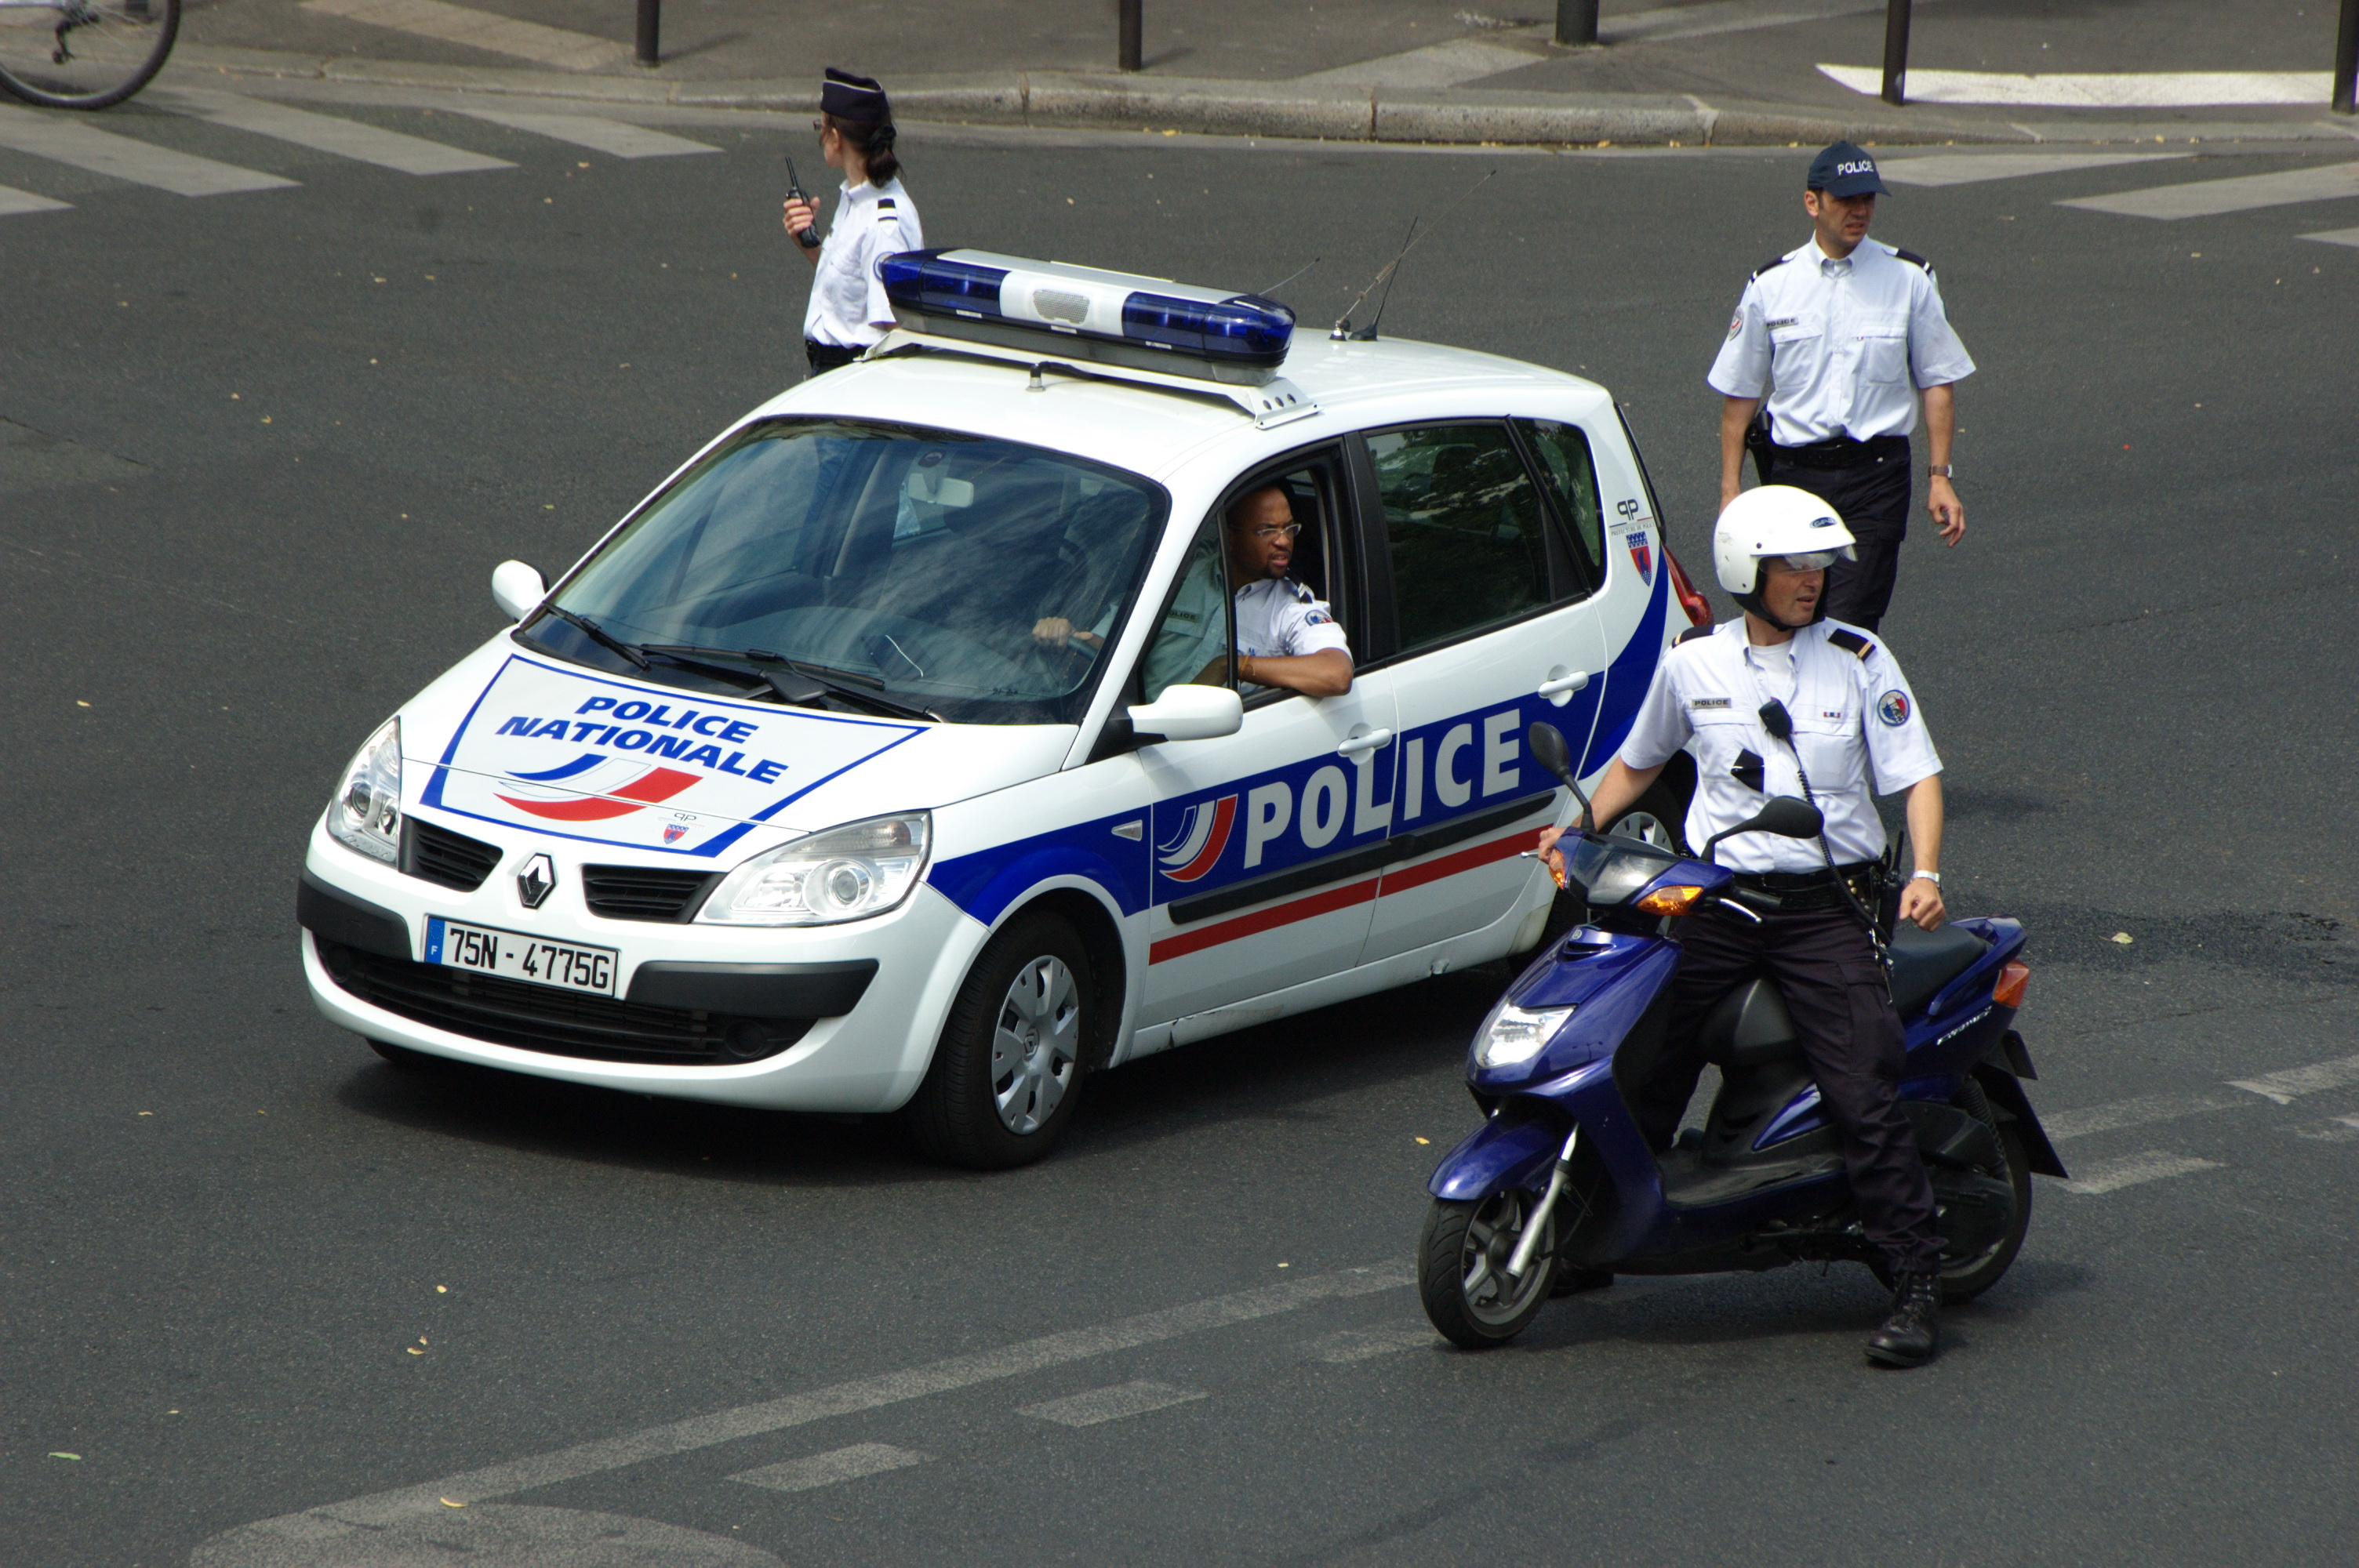 French Lawmakers pass bill that restricts publication of images of police